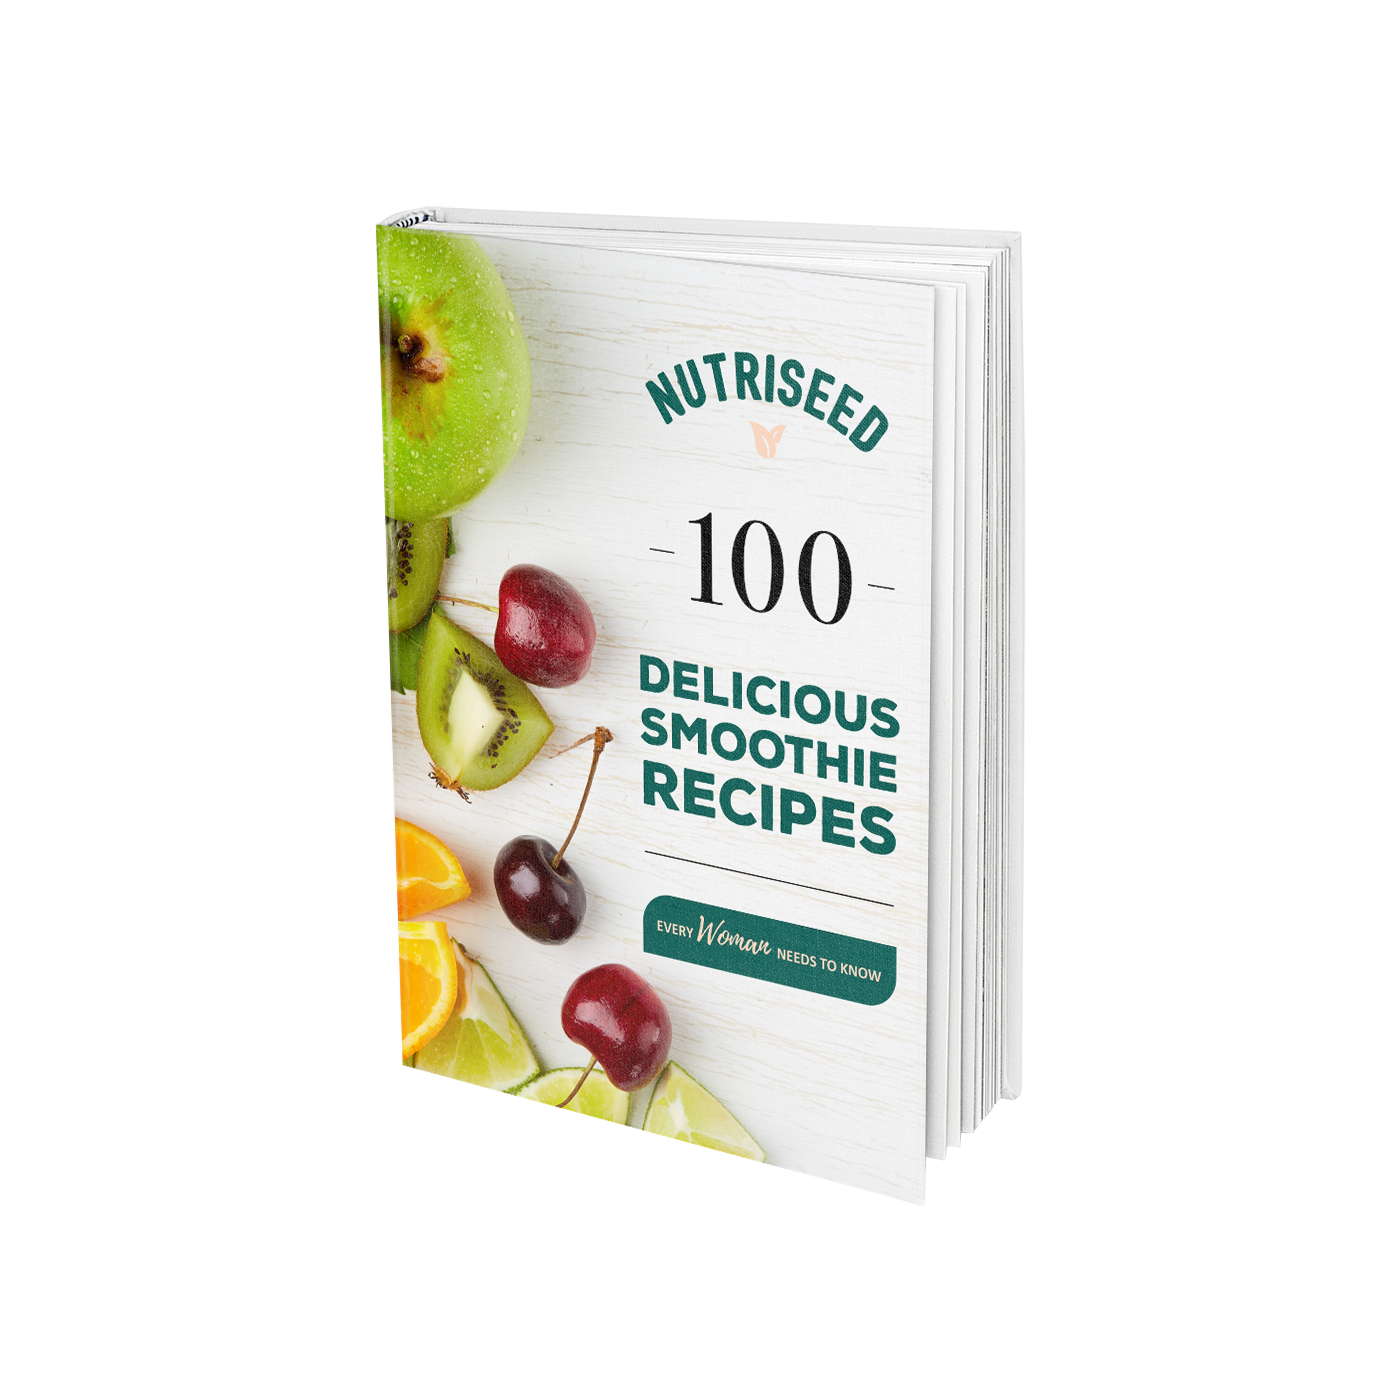 An image of 100 Total Superfood Recipes